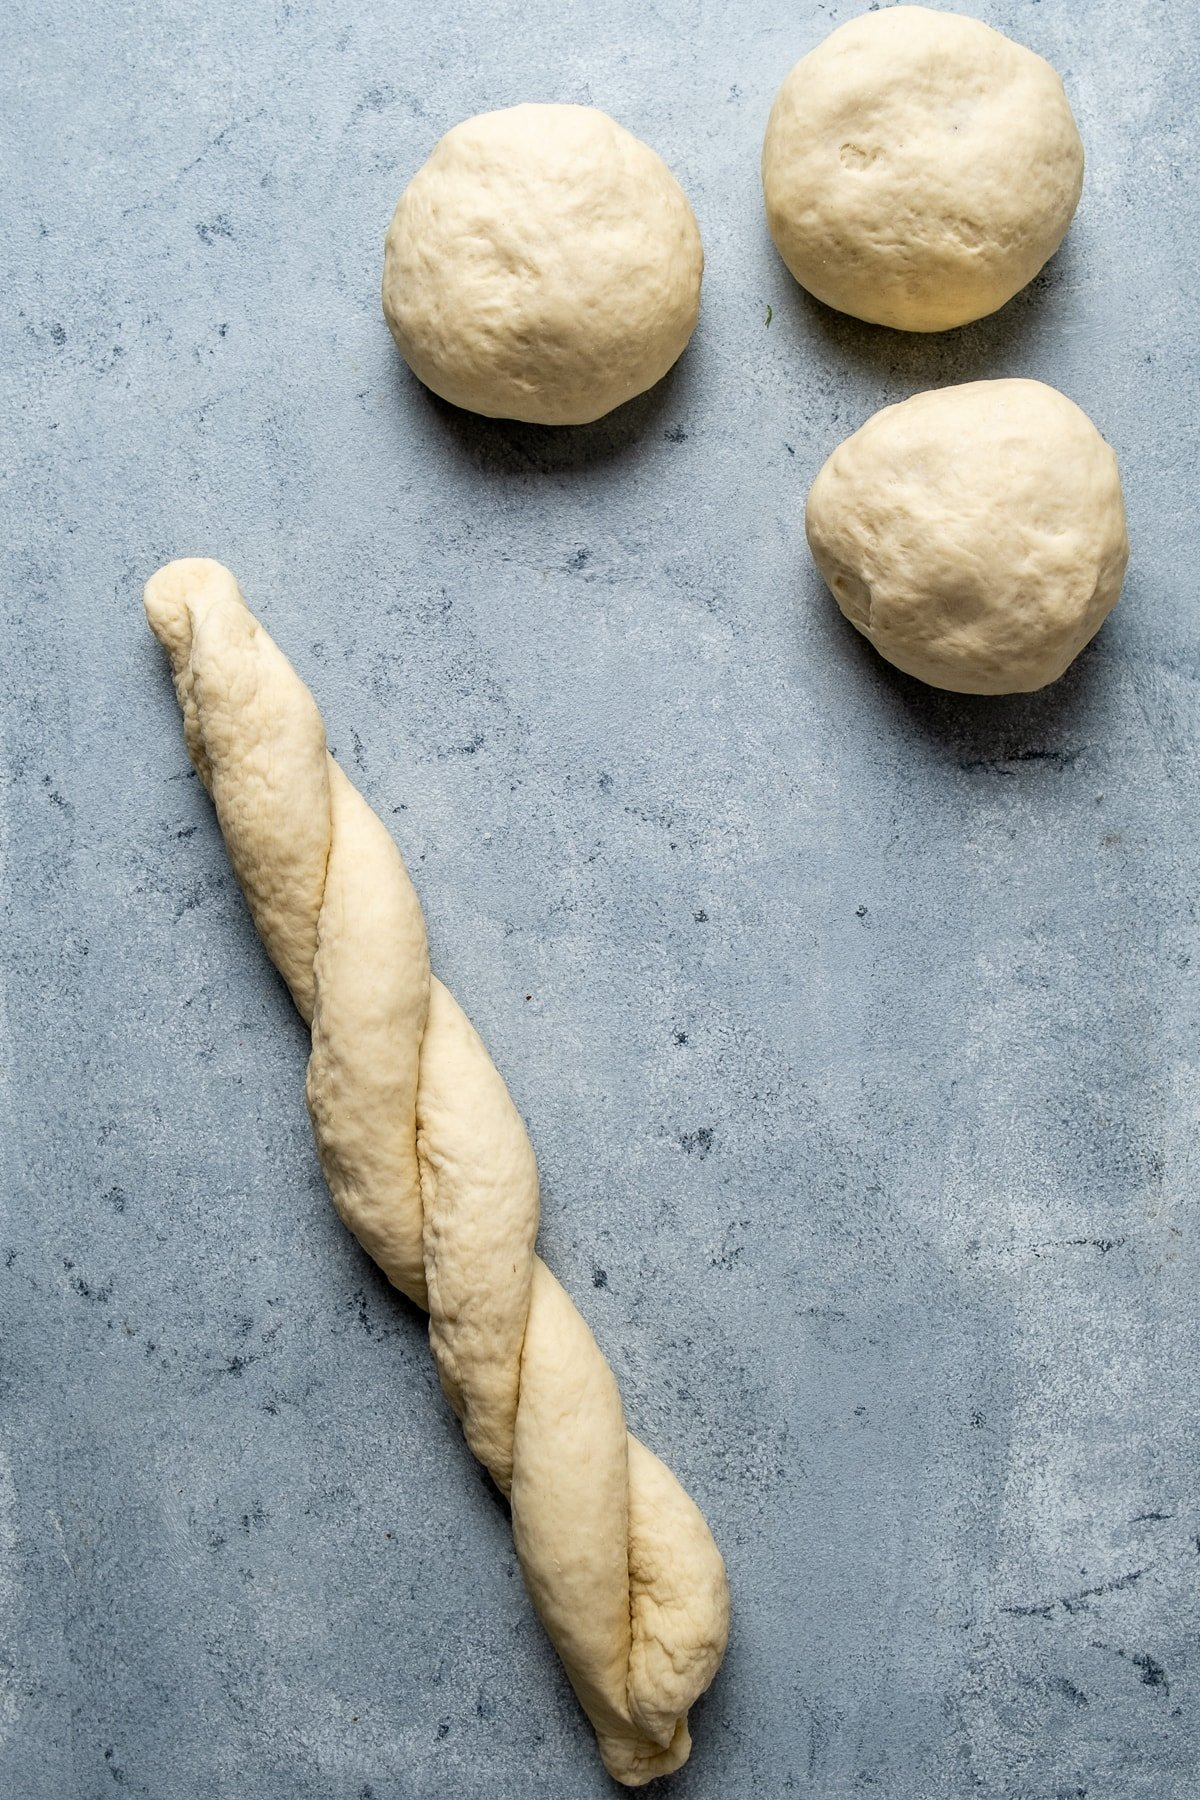 Braided strands of dough and more dough balls on a grey background.